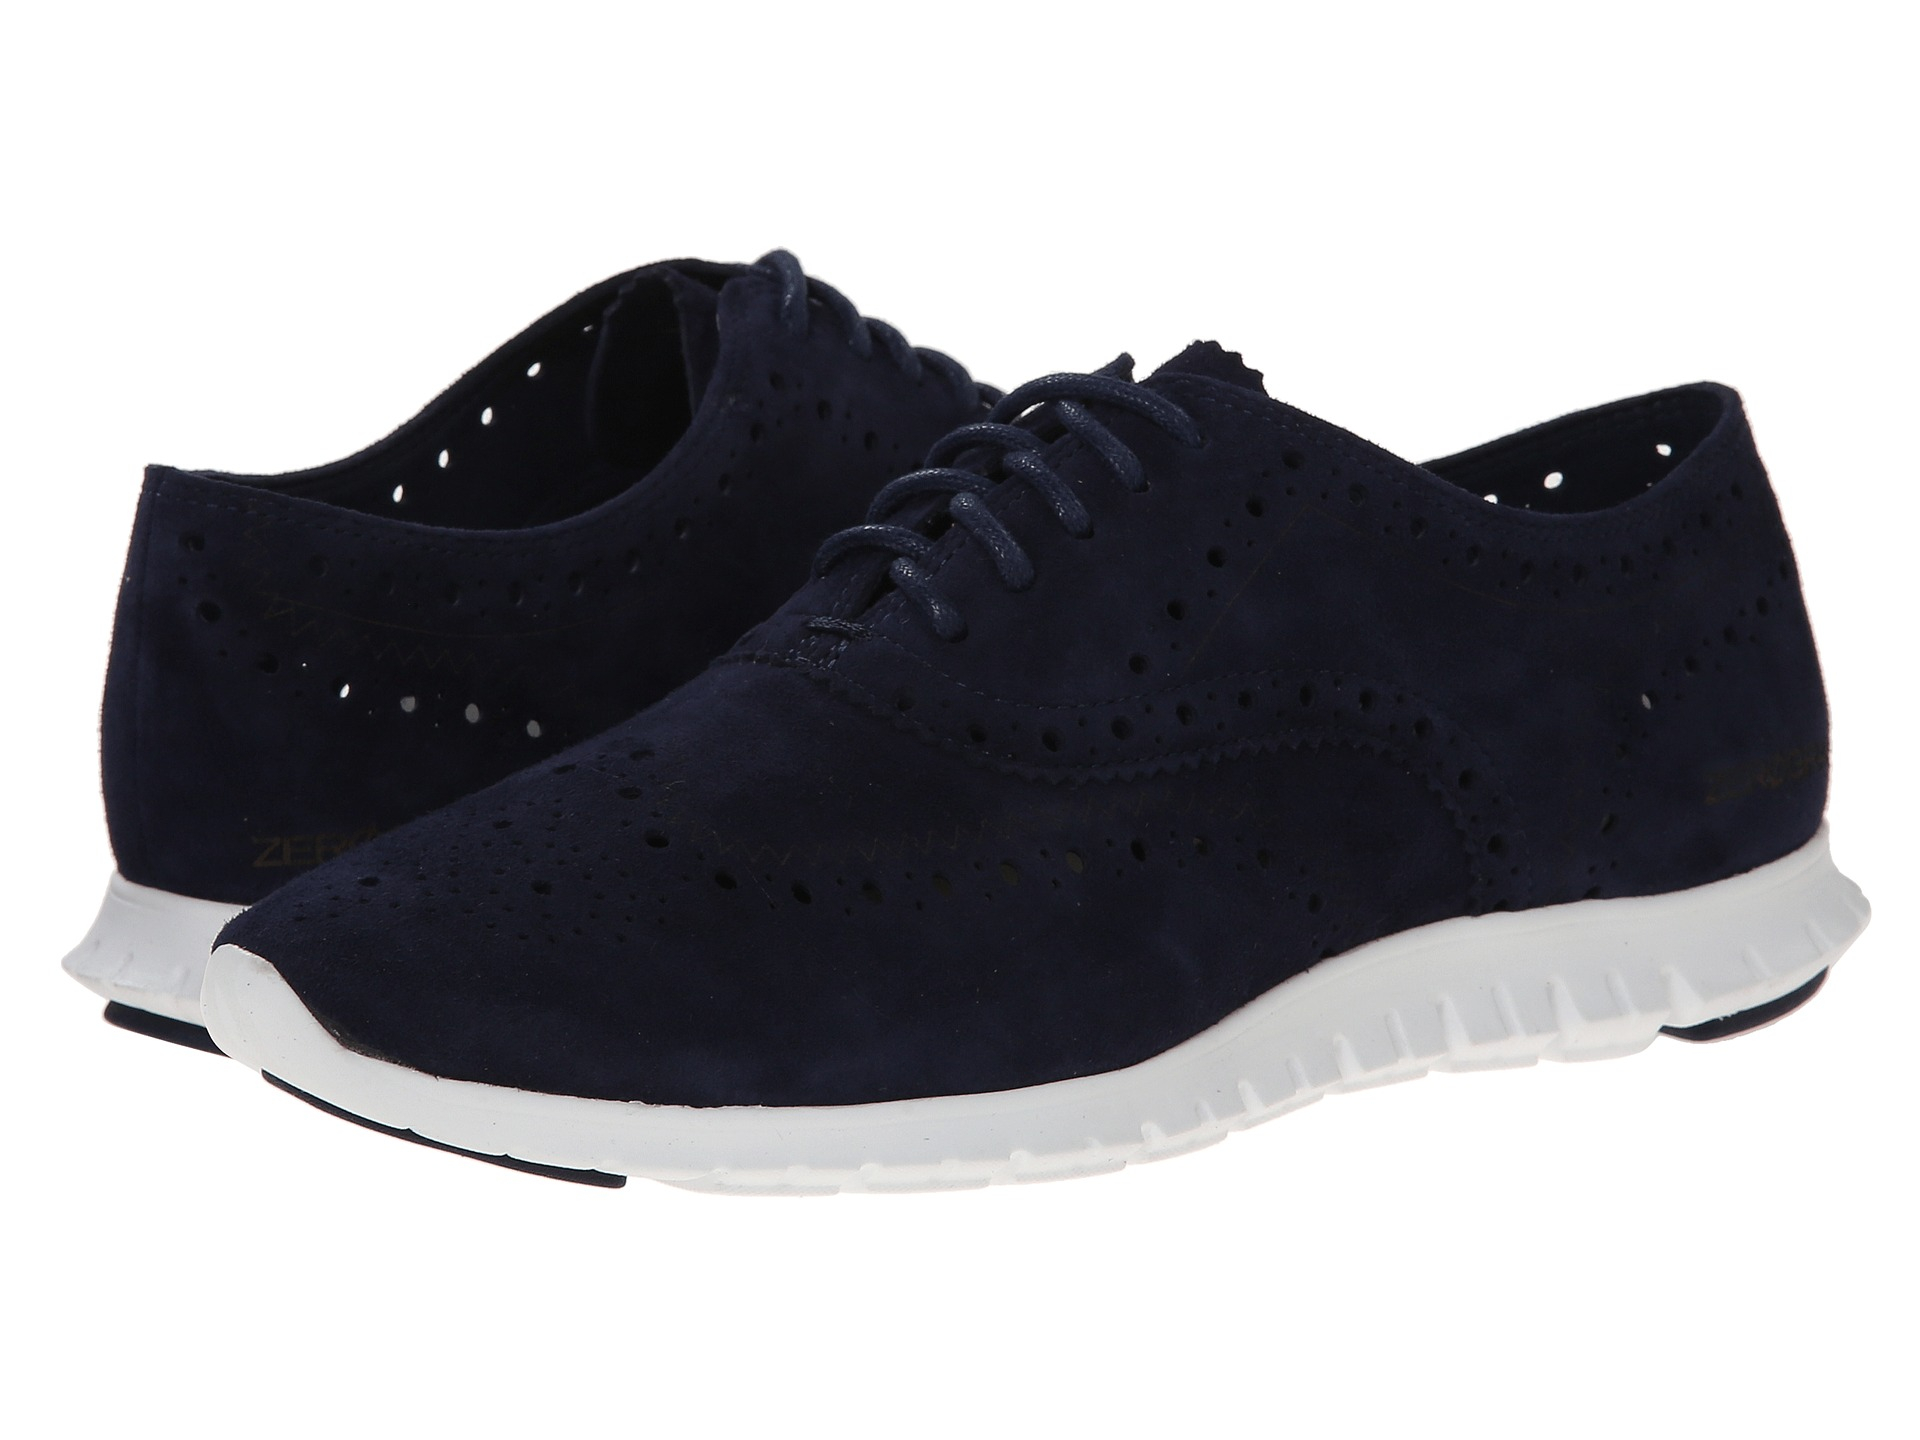 Suede Oxfords For Men Images Shoes Fashion Casual Oxford